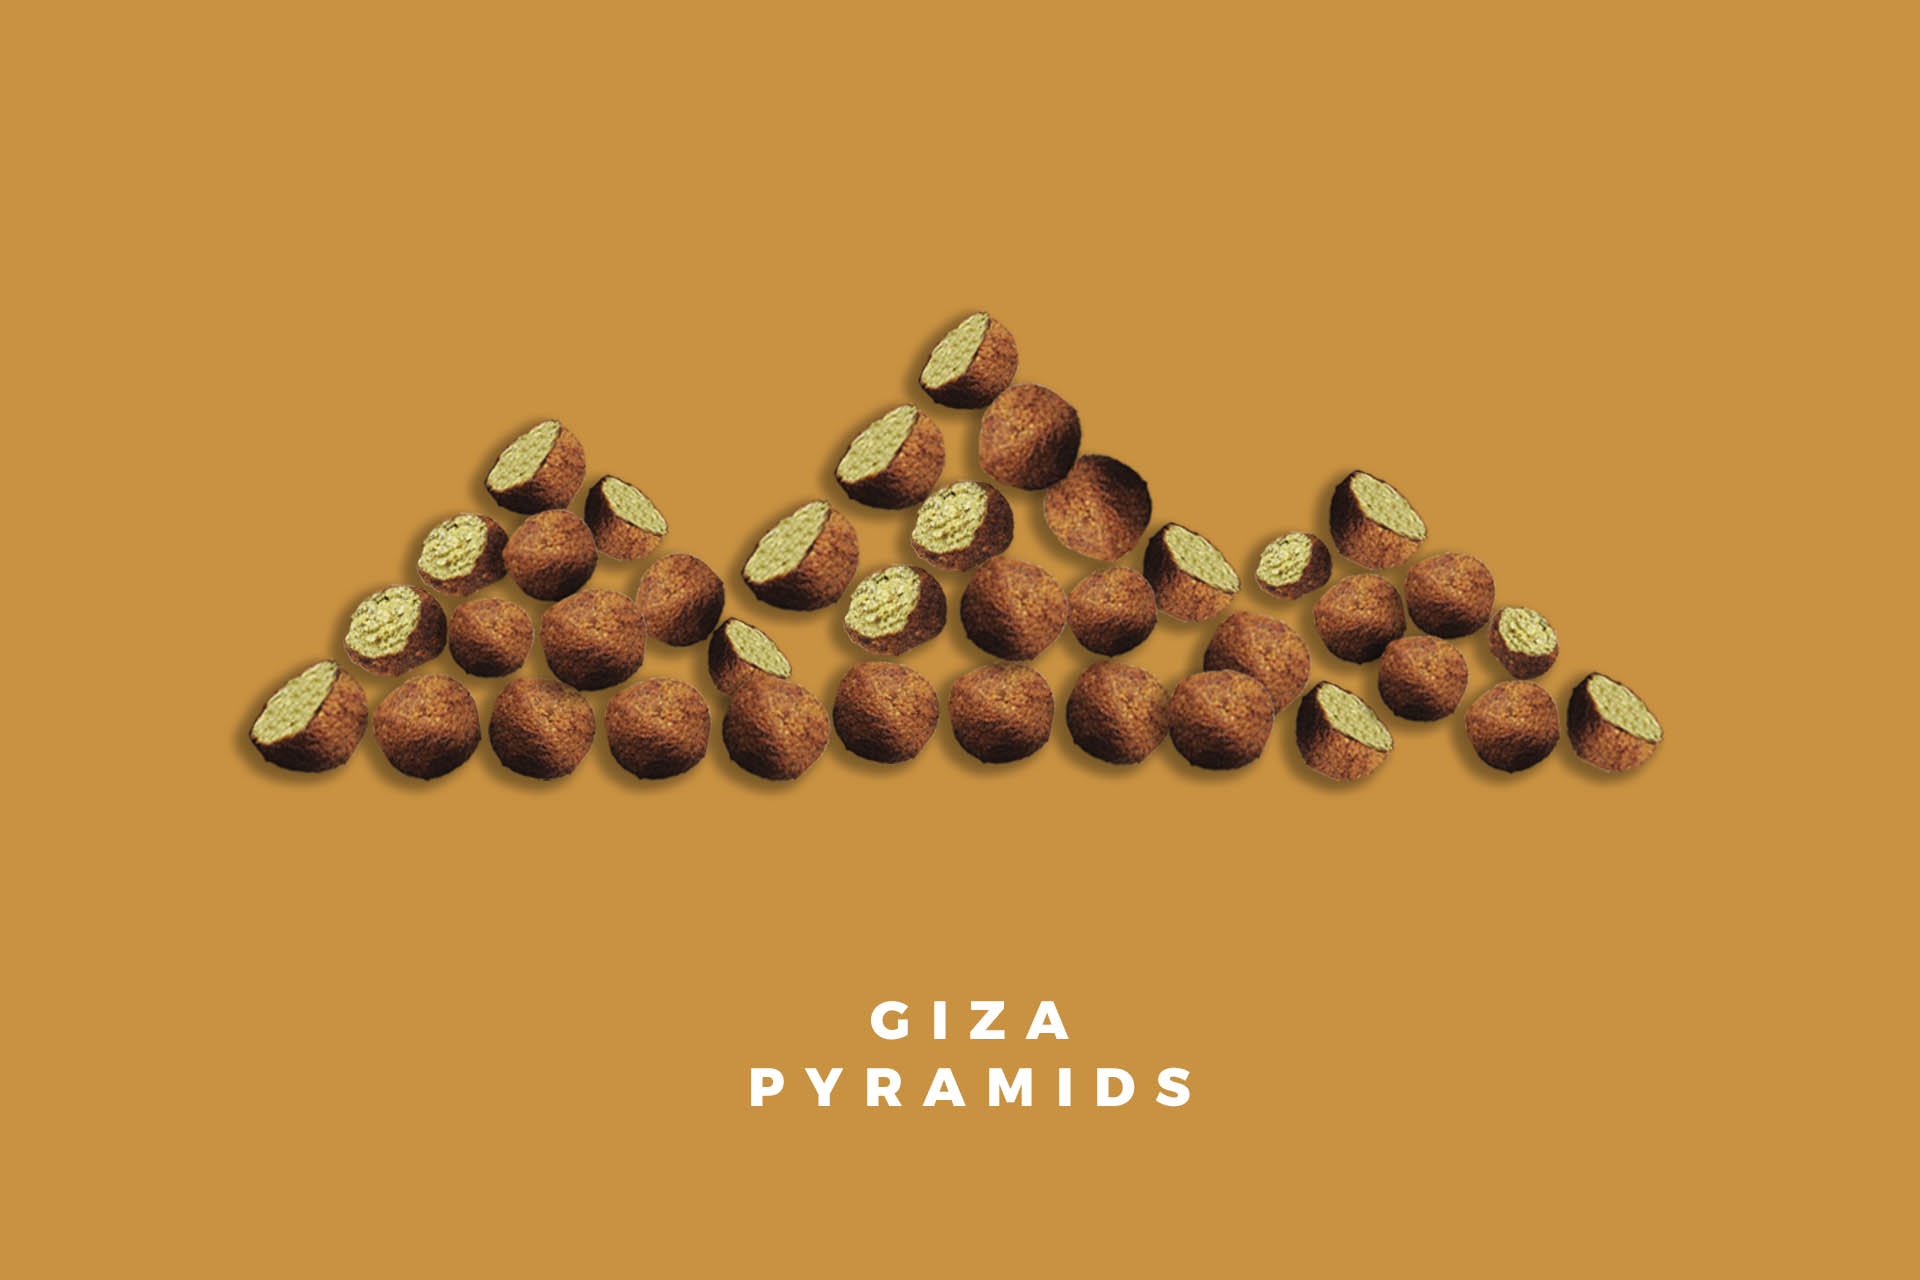 Giza Pyramids in Egypt falafel food illustration